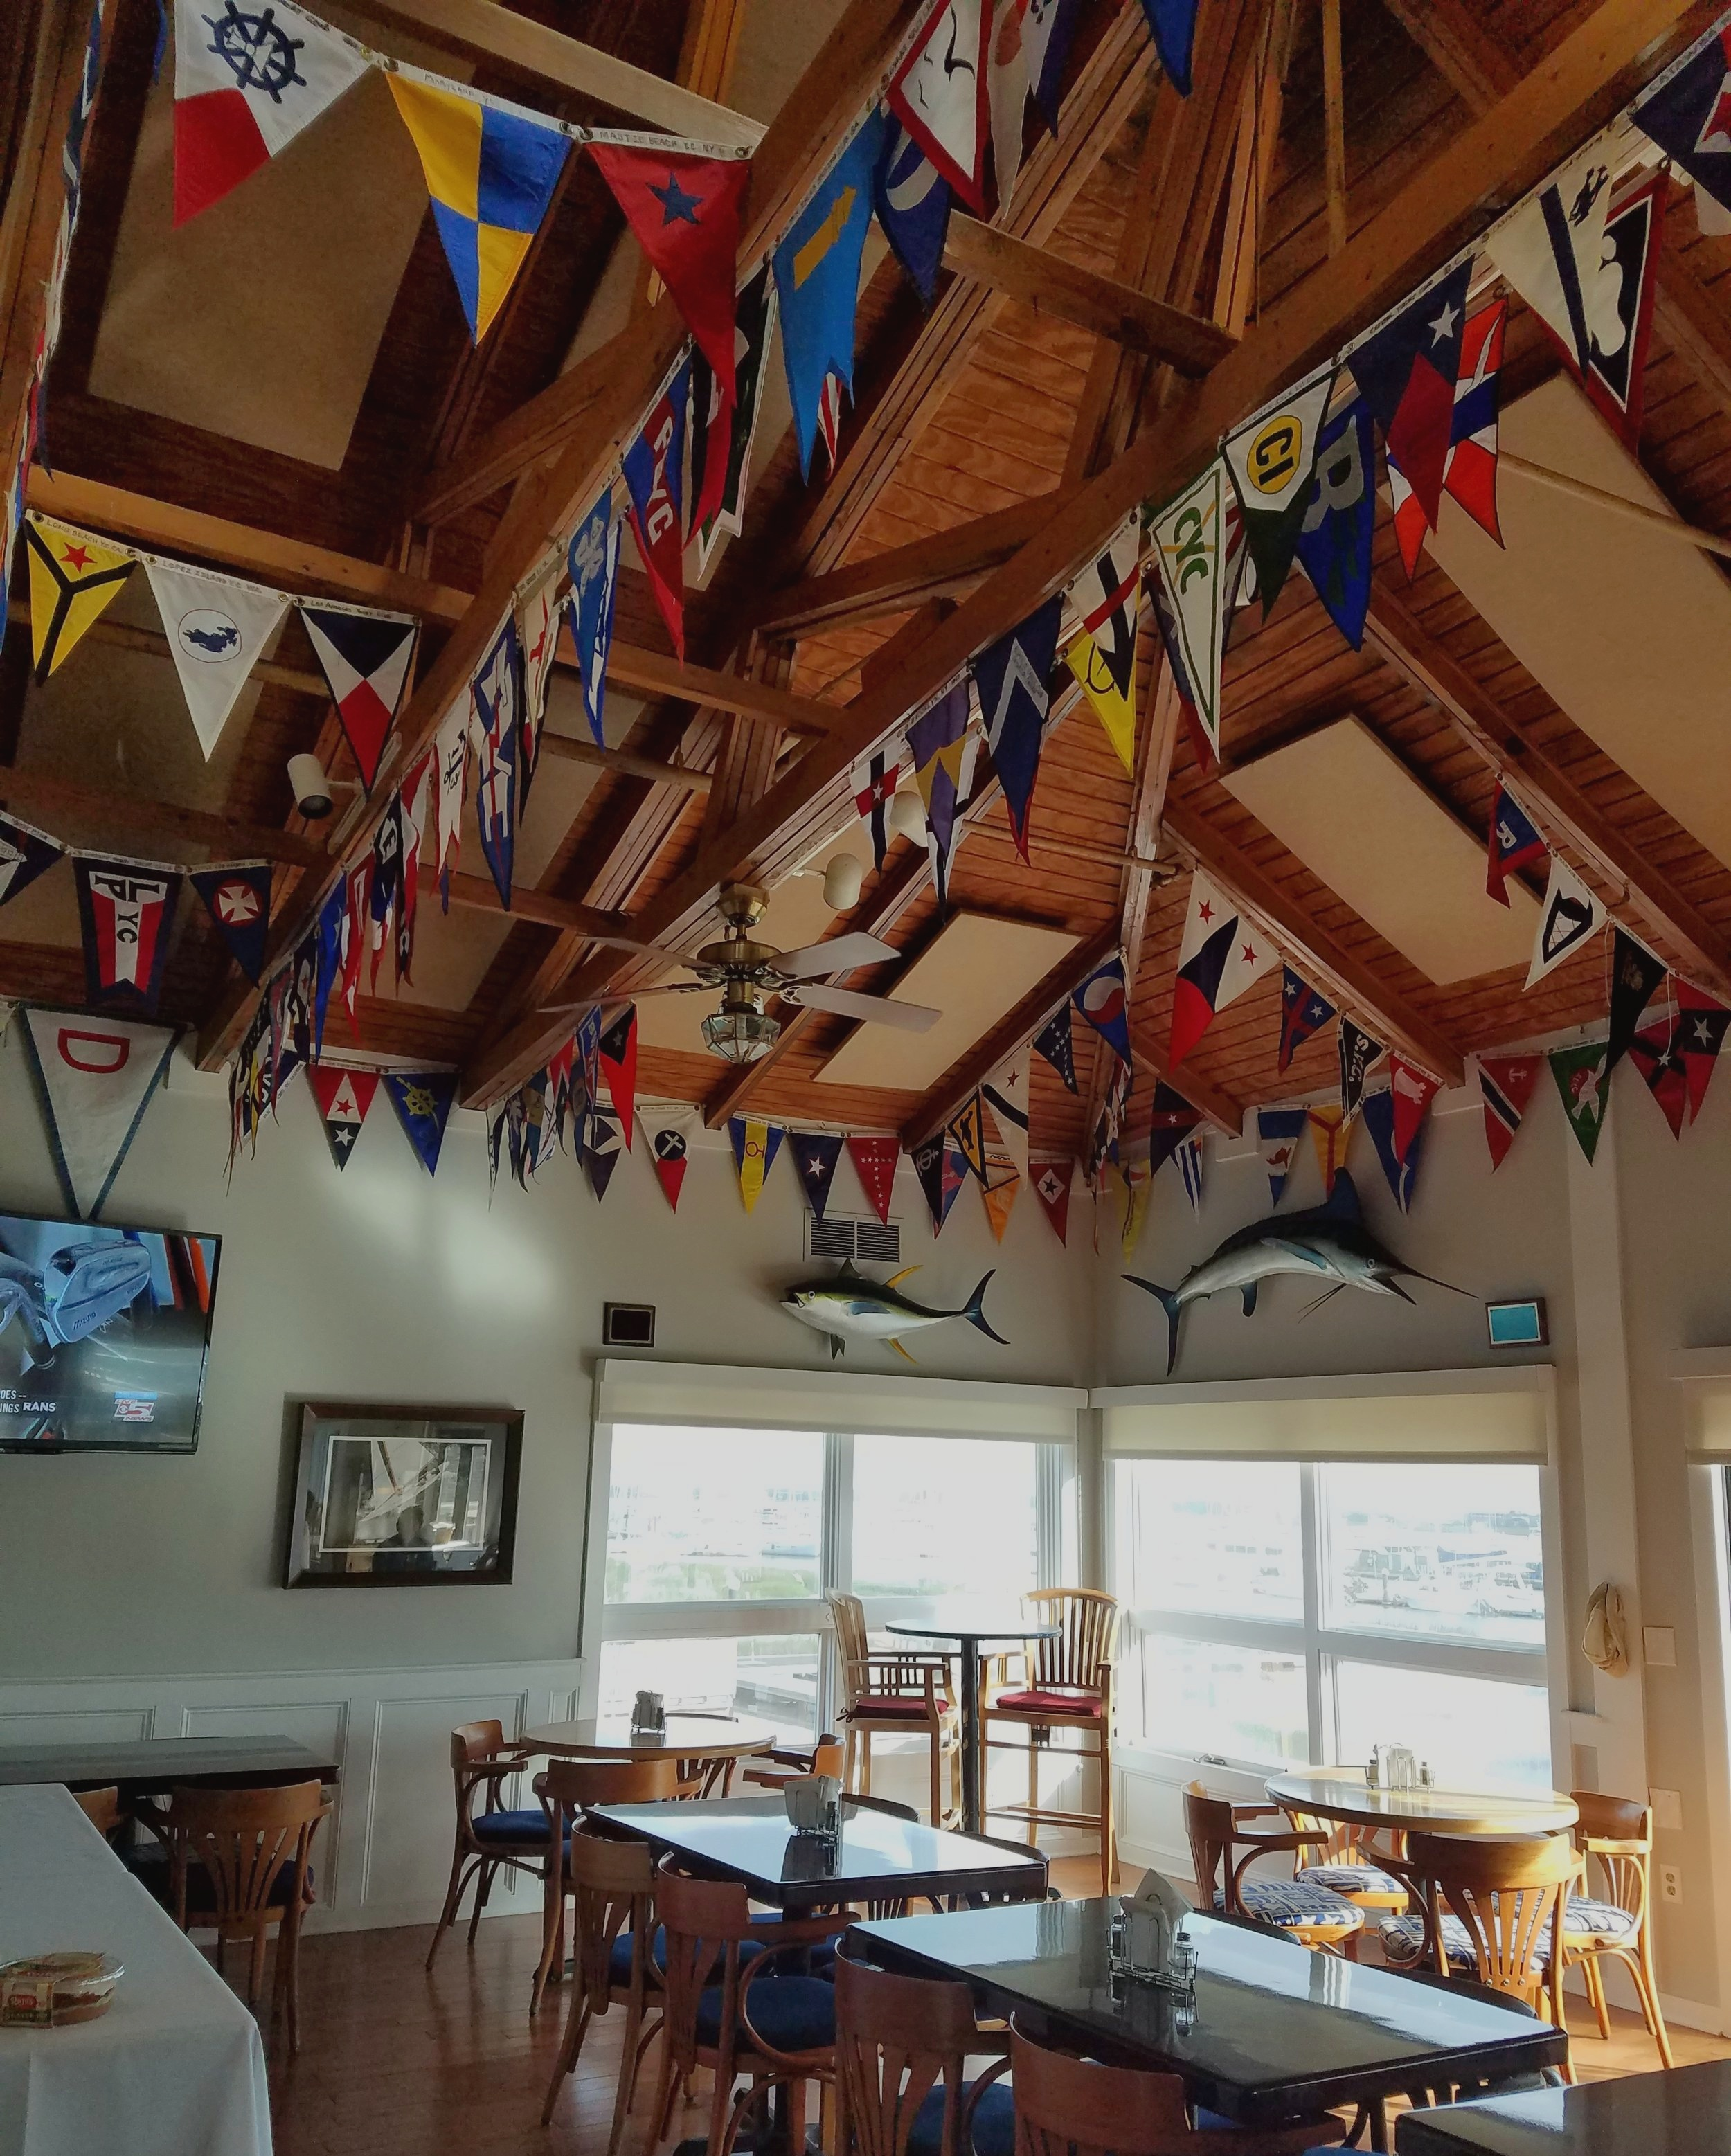 SFYC burgee made the cut!